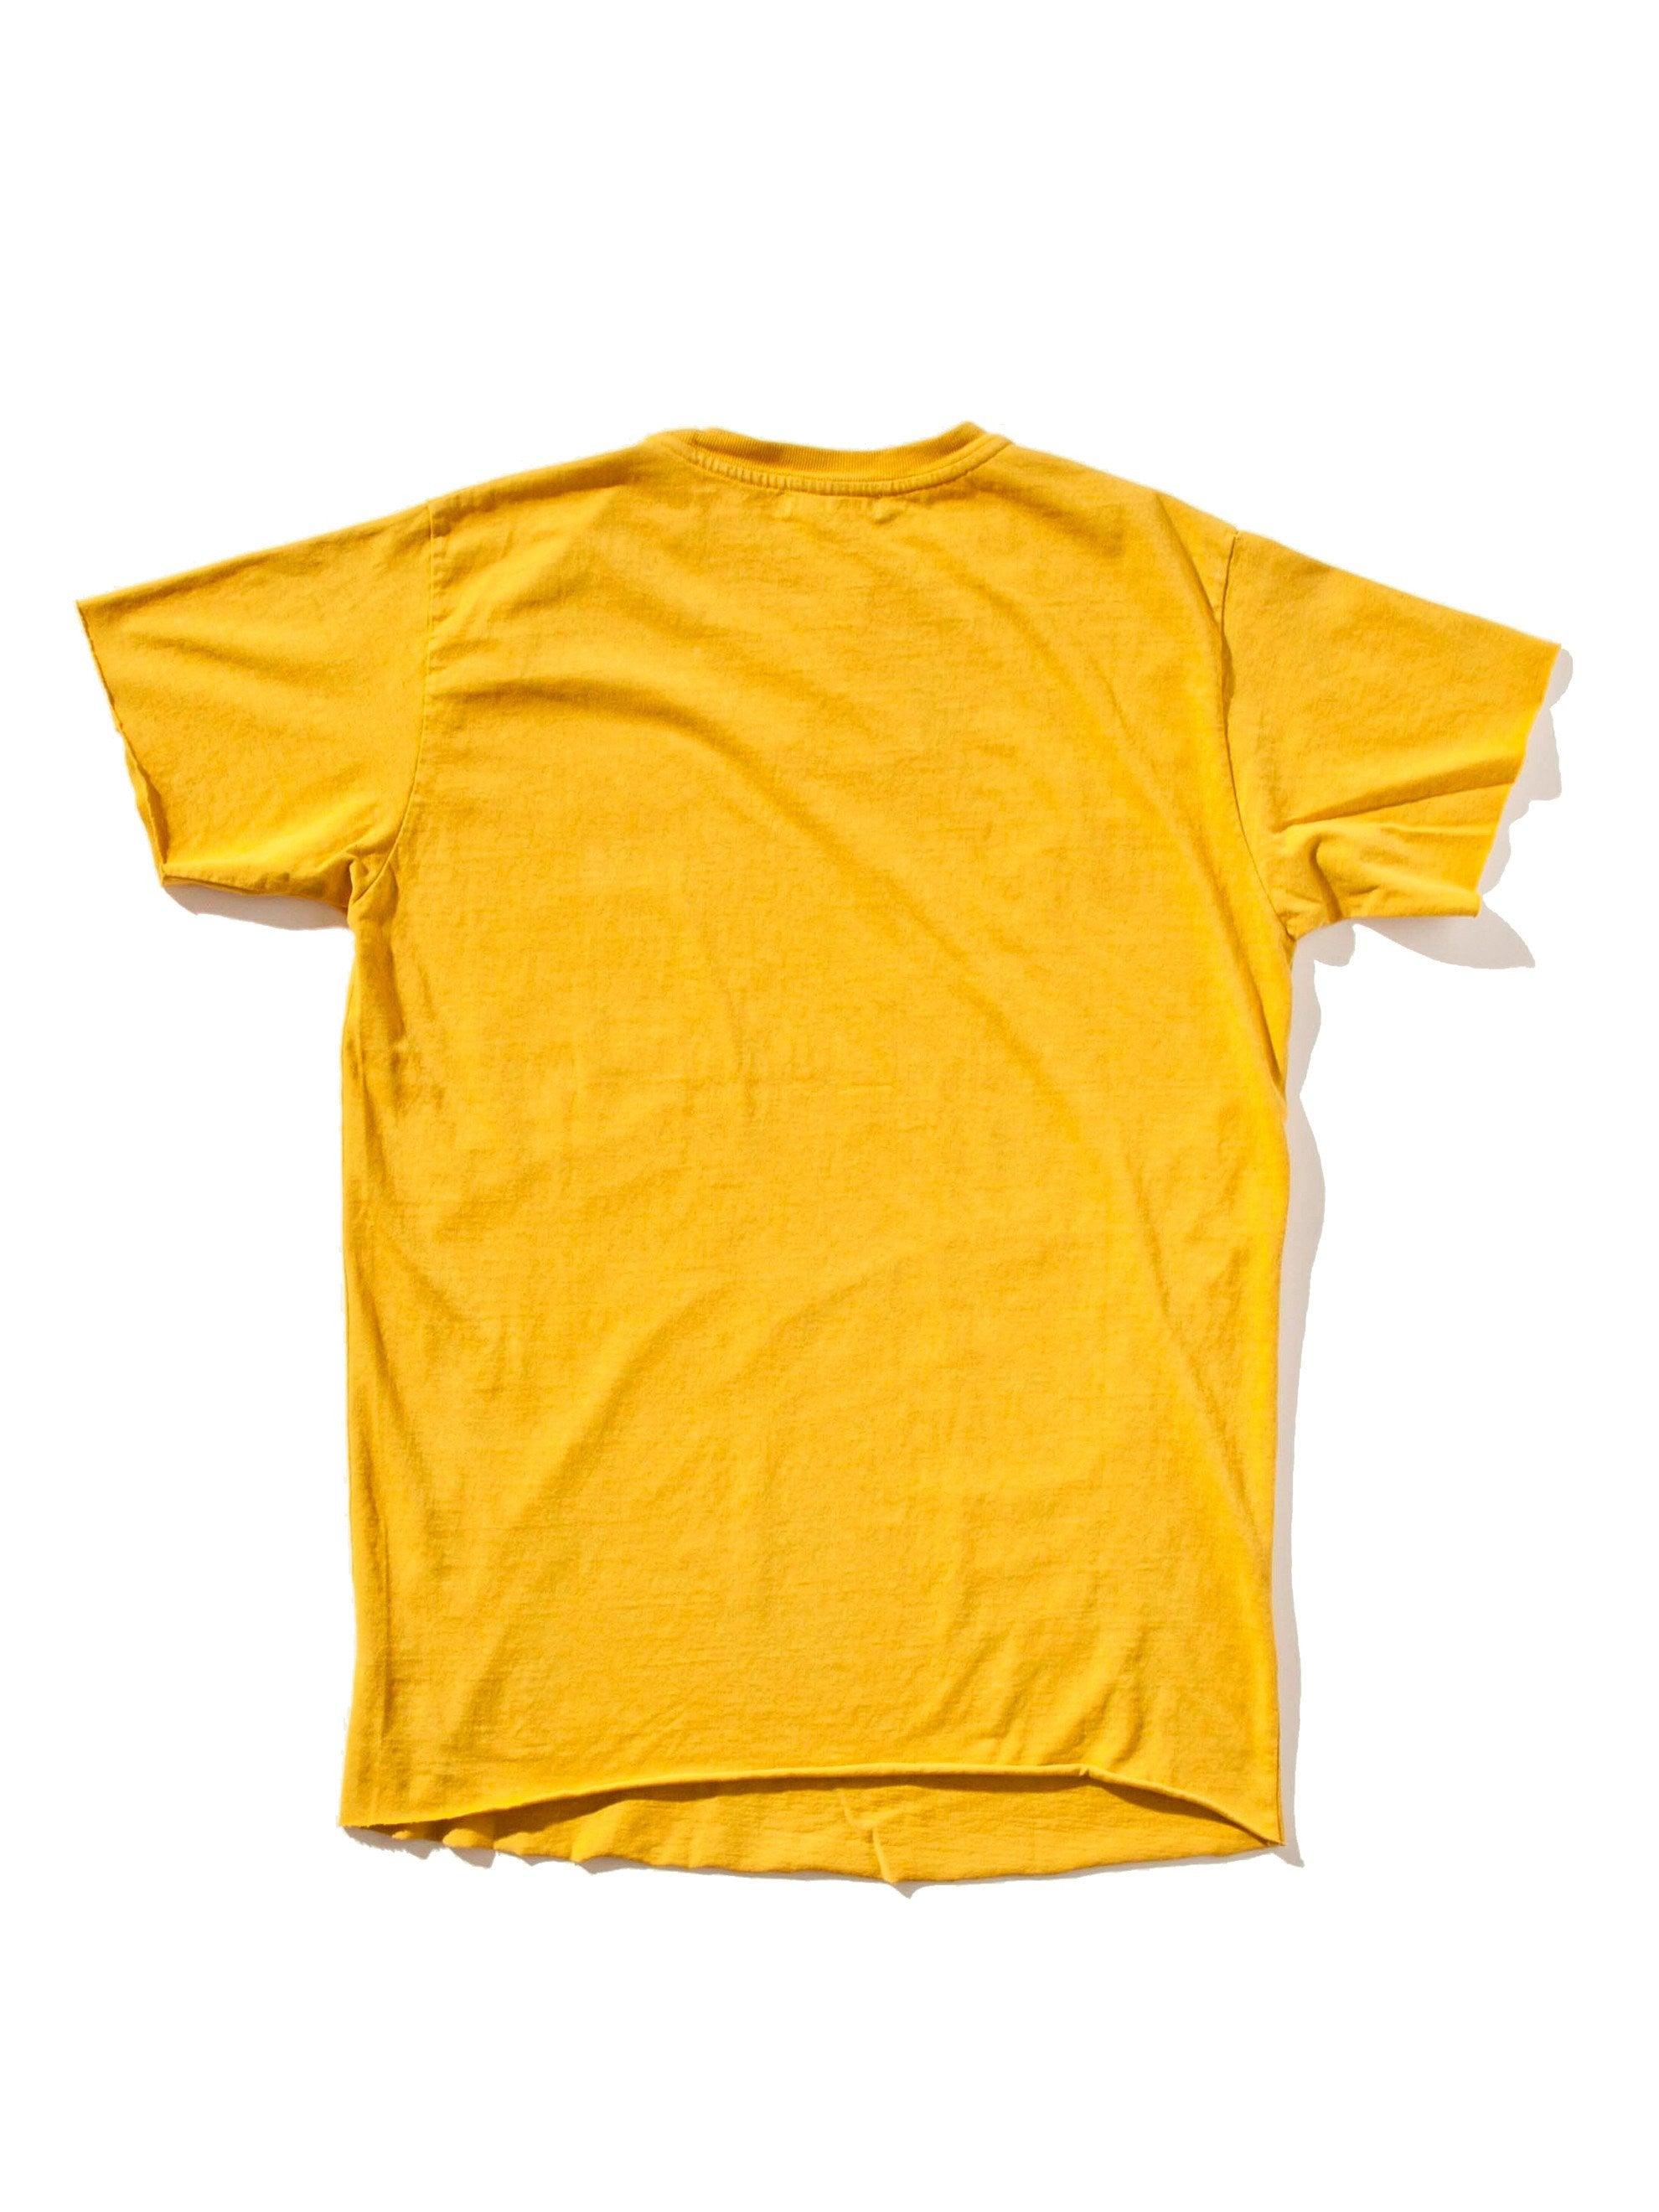 Mustard Anti-Expo T-Shirt 7